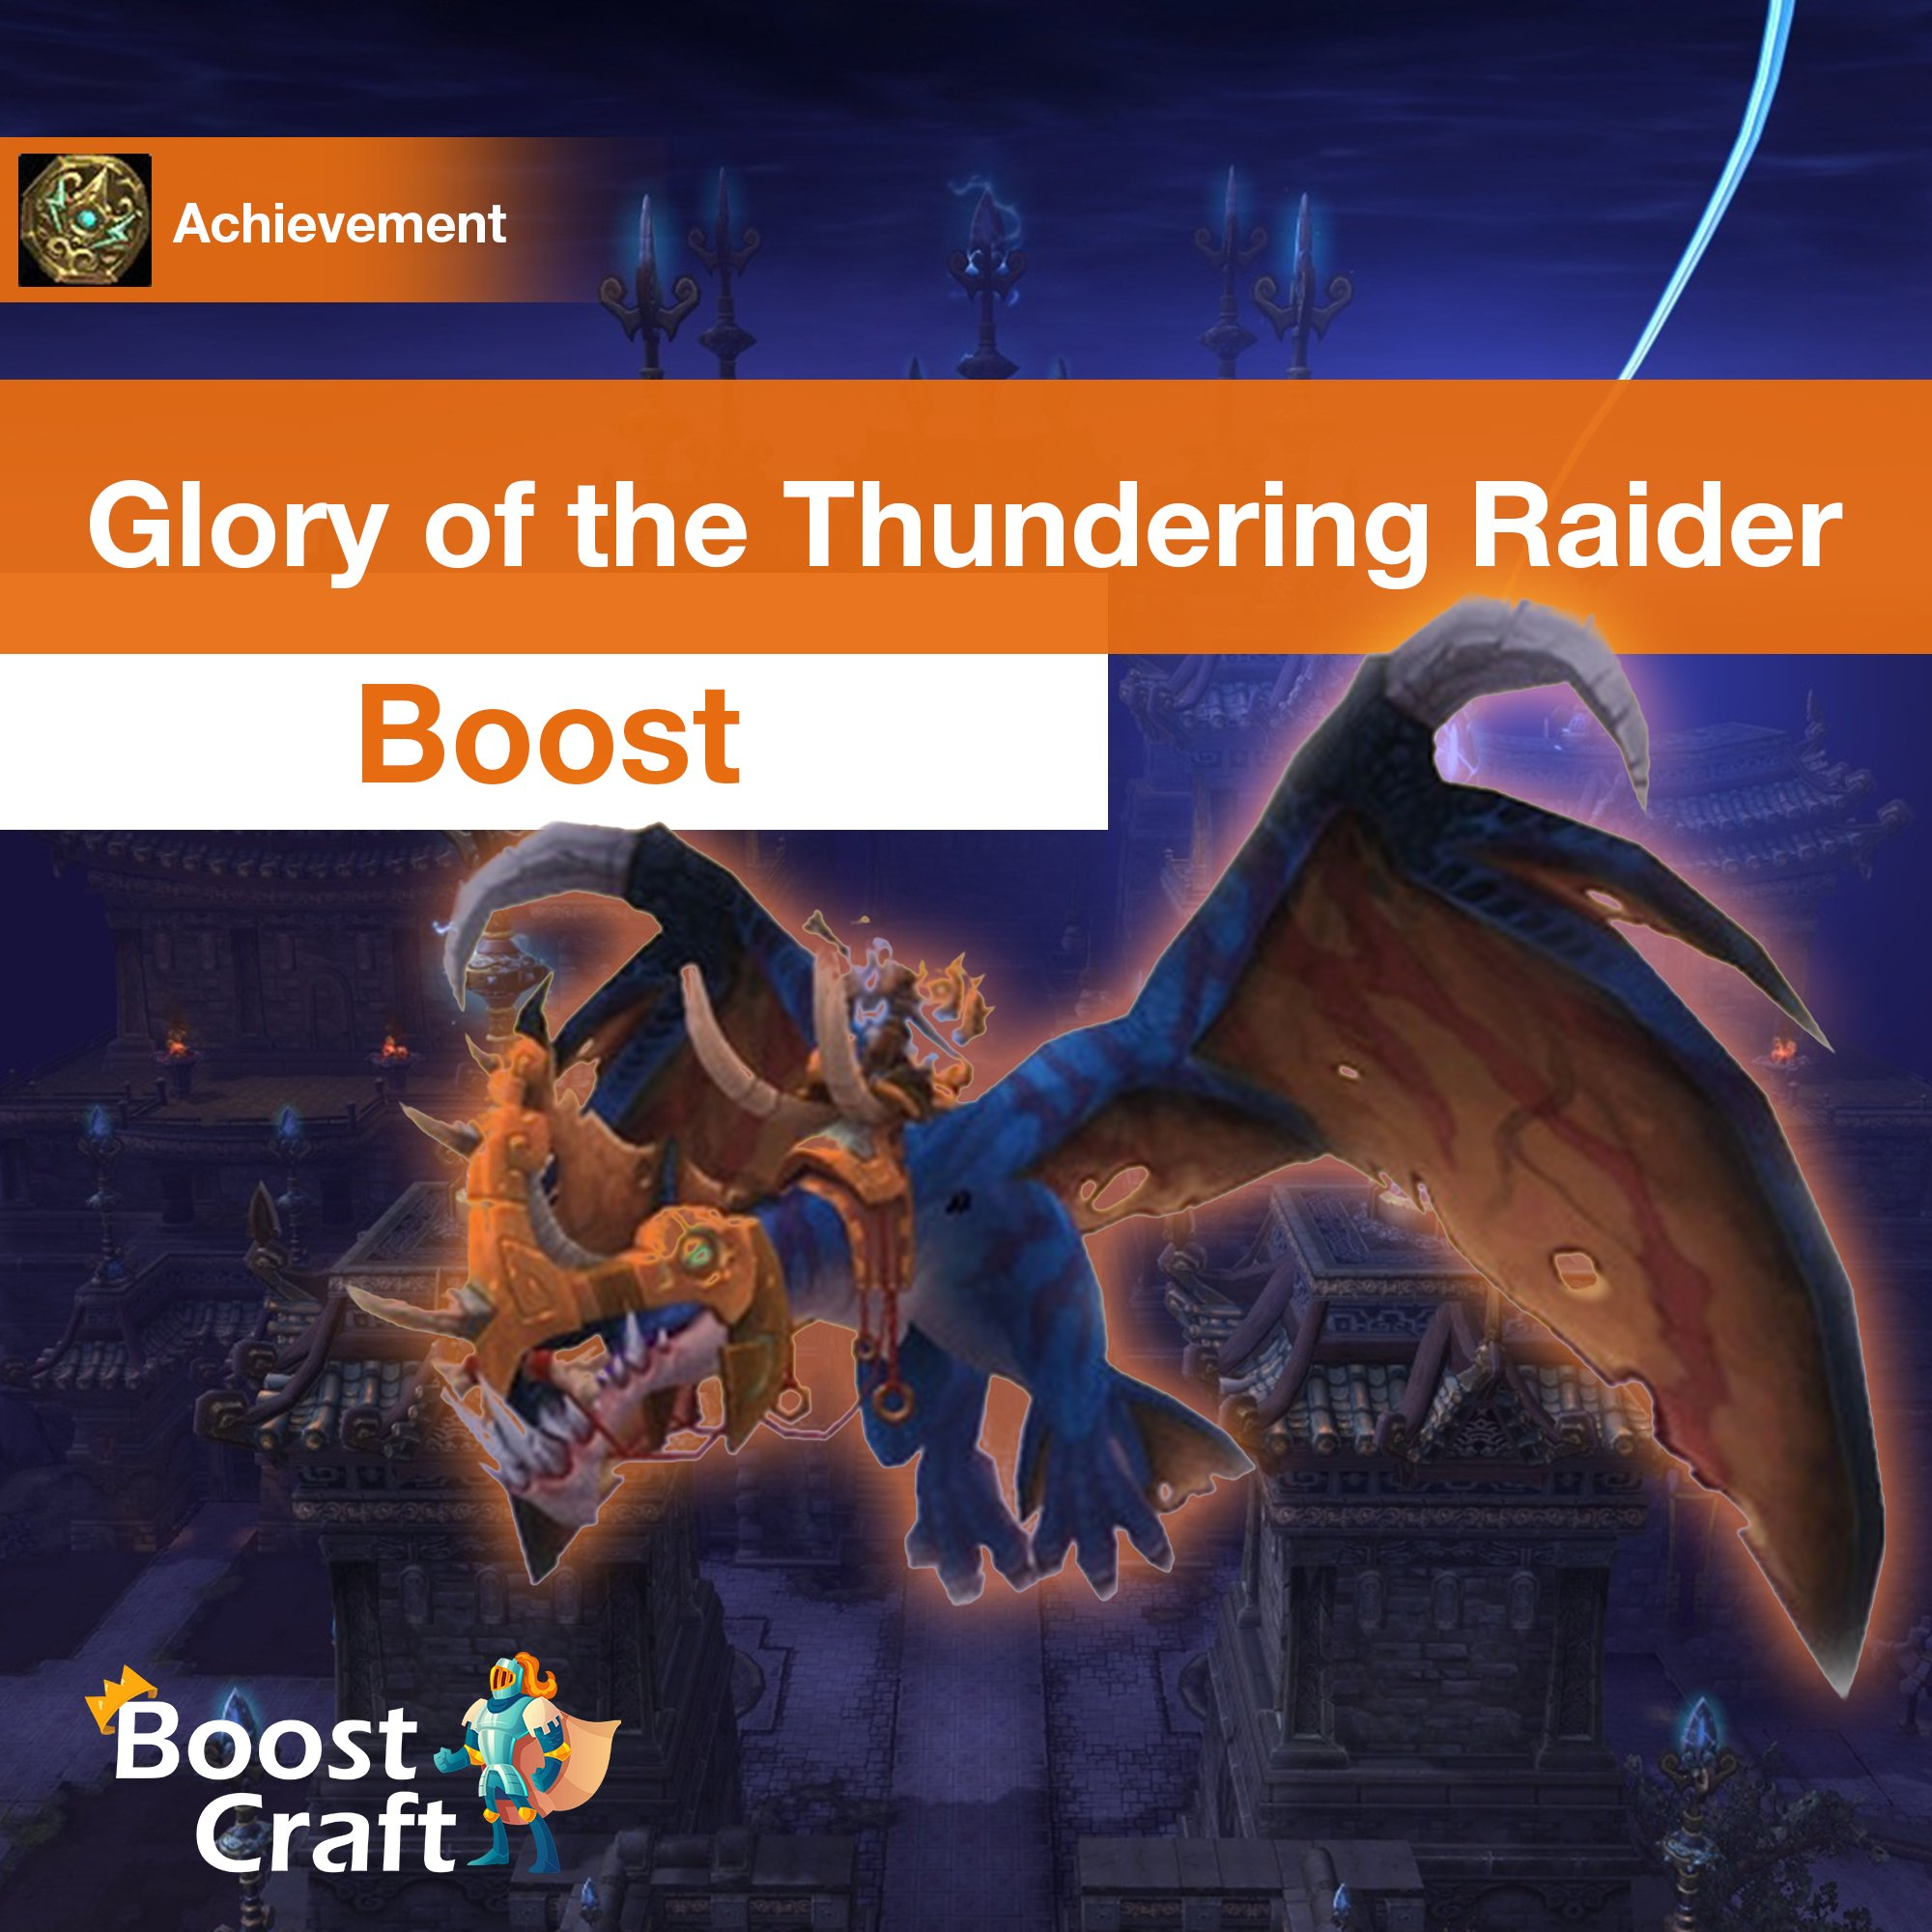 [Glory of the Thundering Raider] Boost